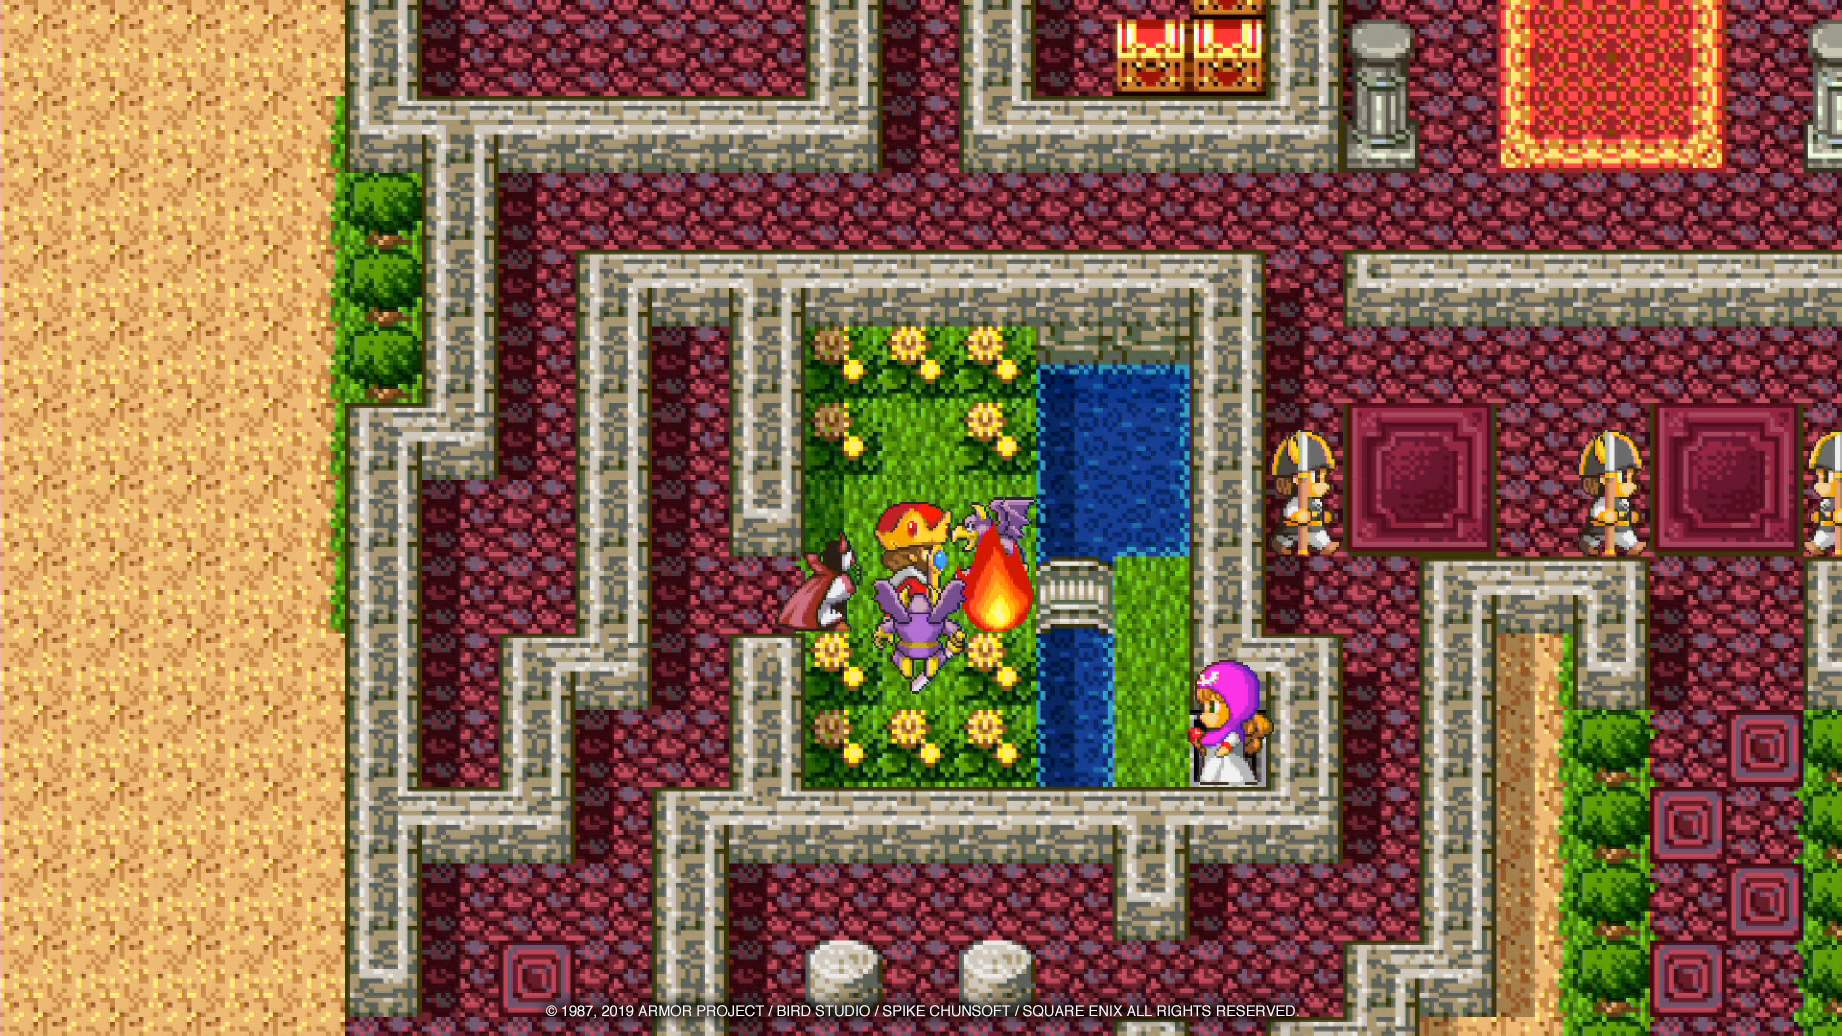 The king is attacked by monsters in the castle.